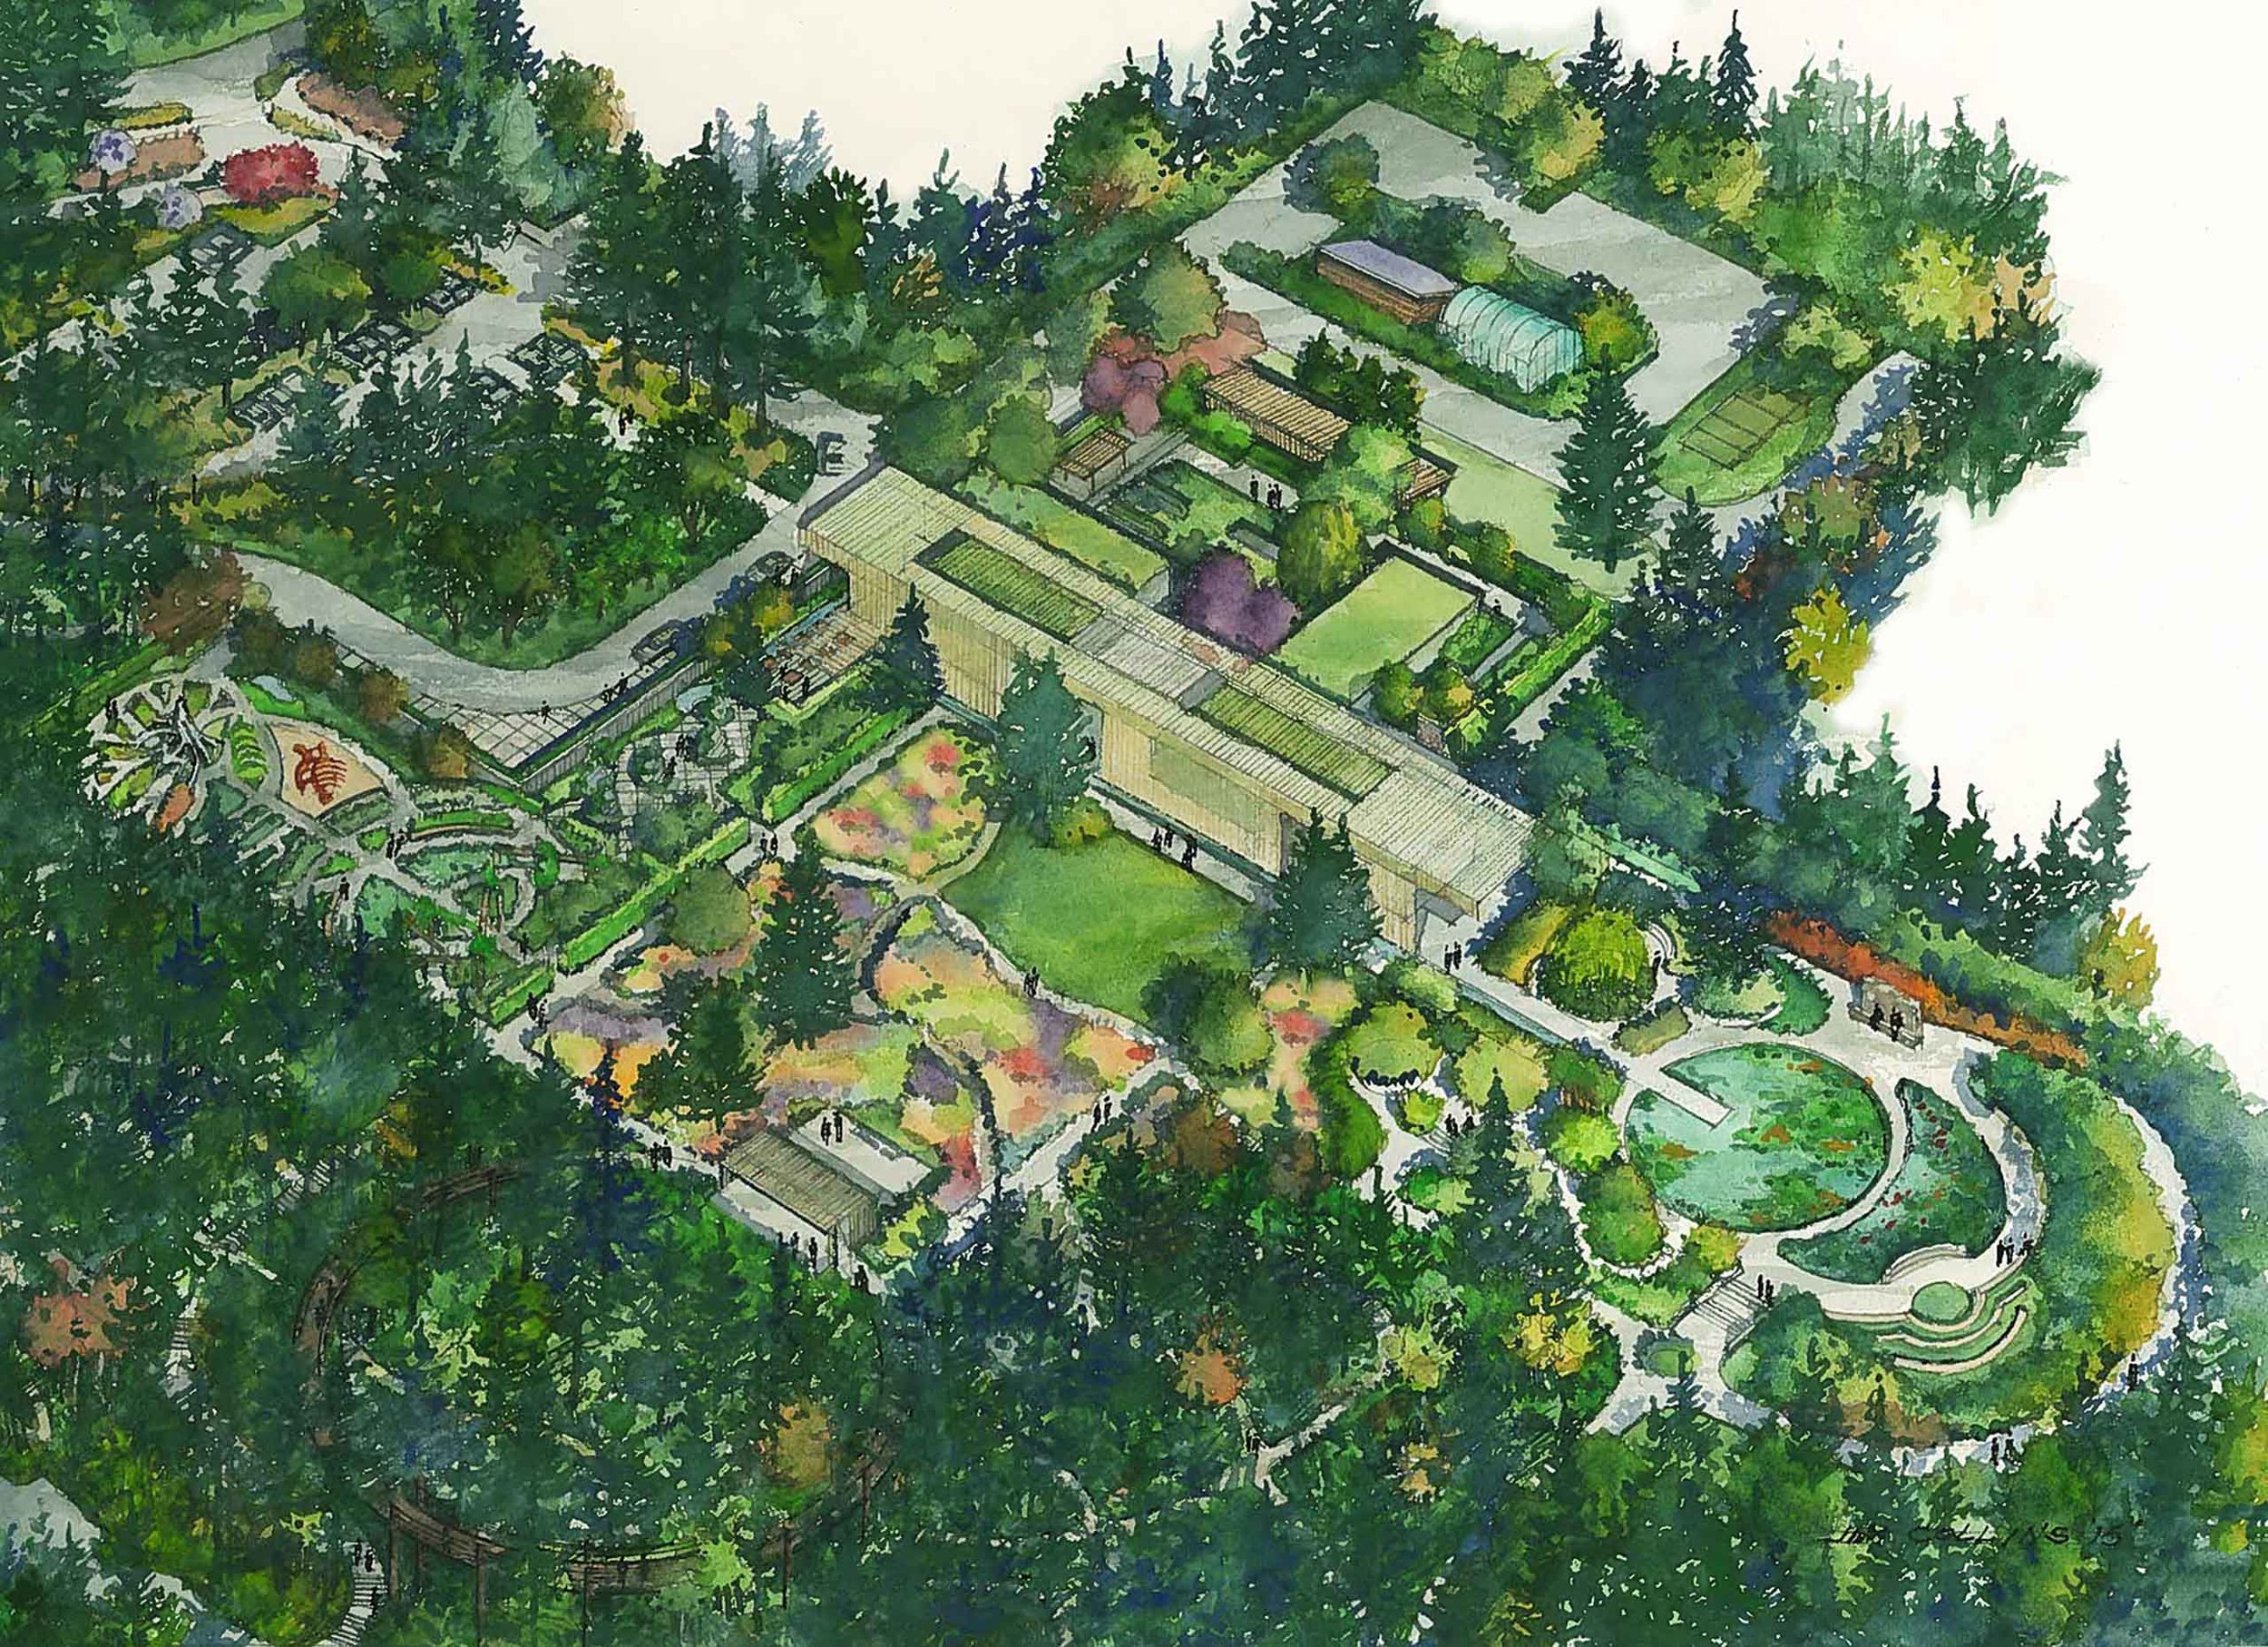 The best process: Leach Botanical Garden Master Plan for Portland Parks & Recreation. Garden design informed by horticulture, artistry, and landscape architecture.